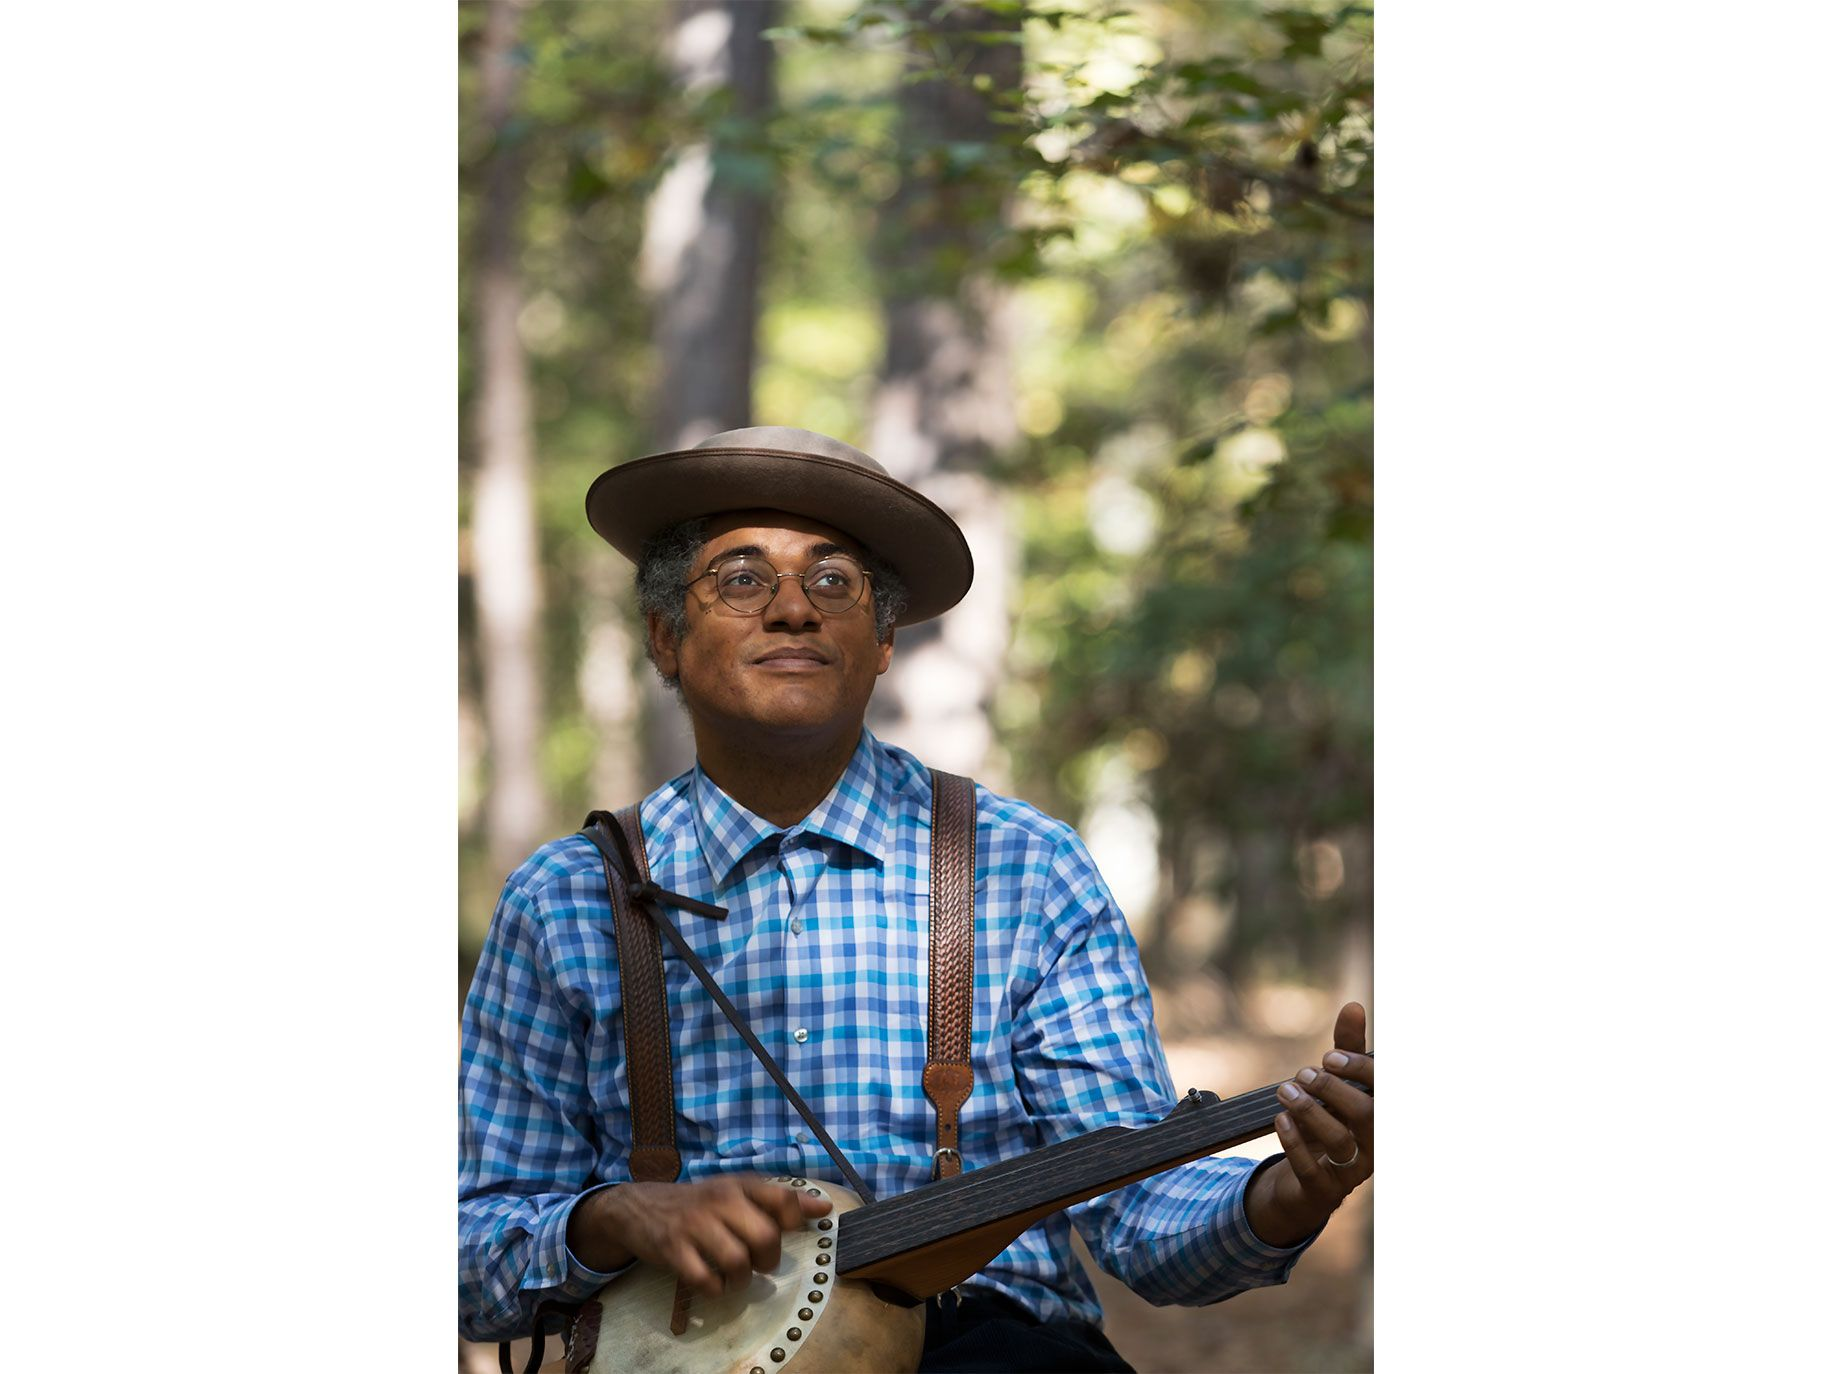 Dom Flemons is inspired by a color-blind pioneer spirit.